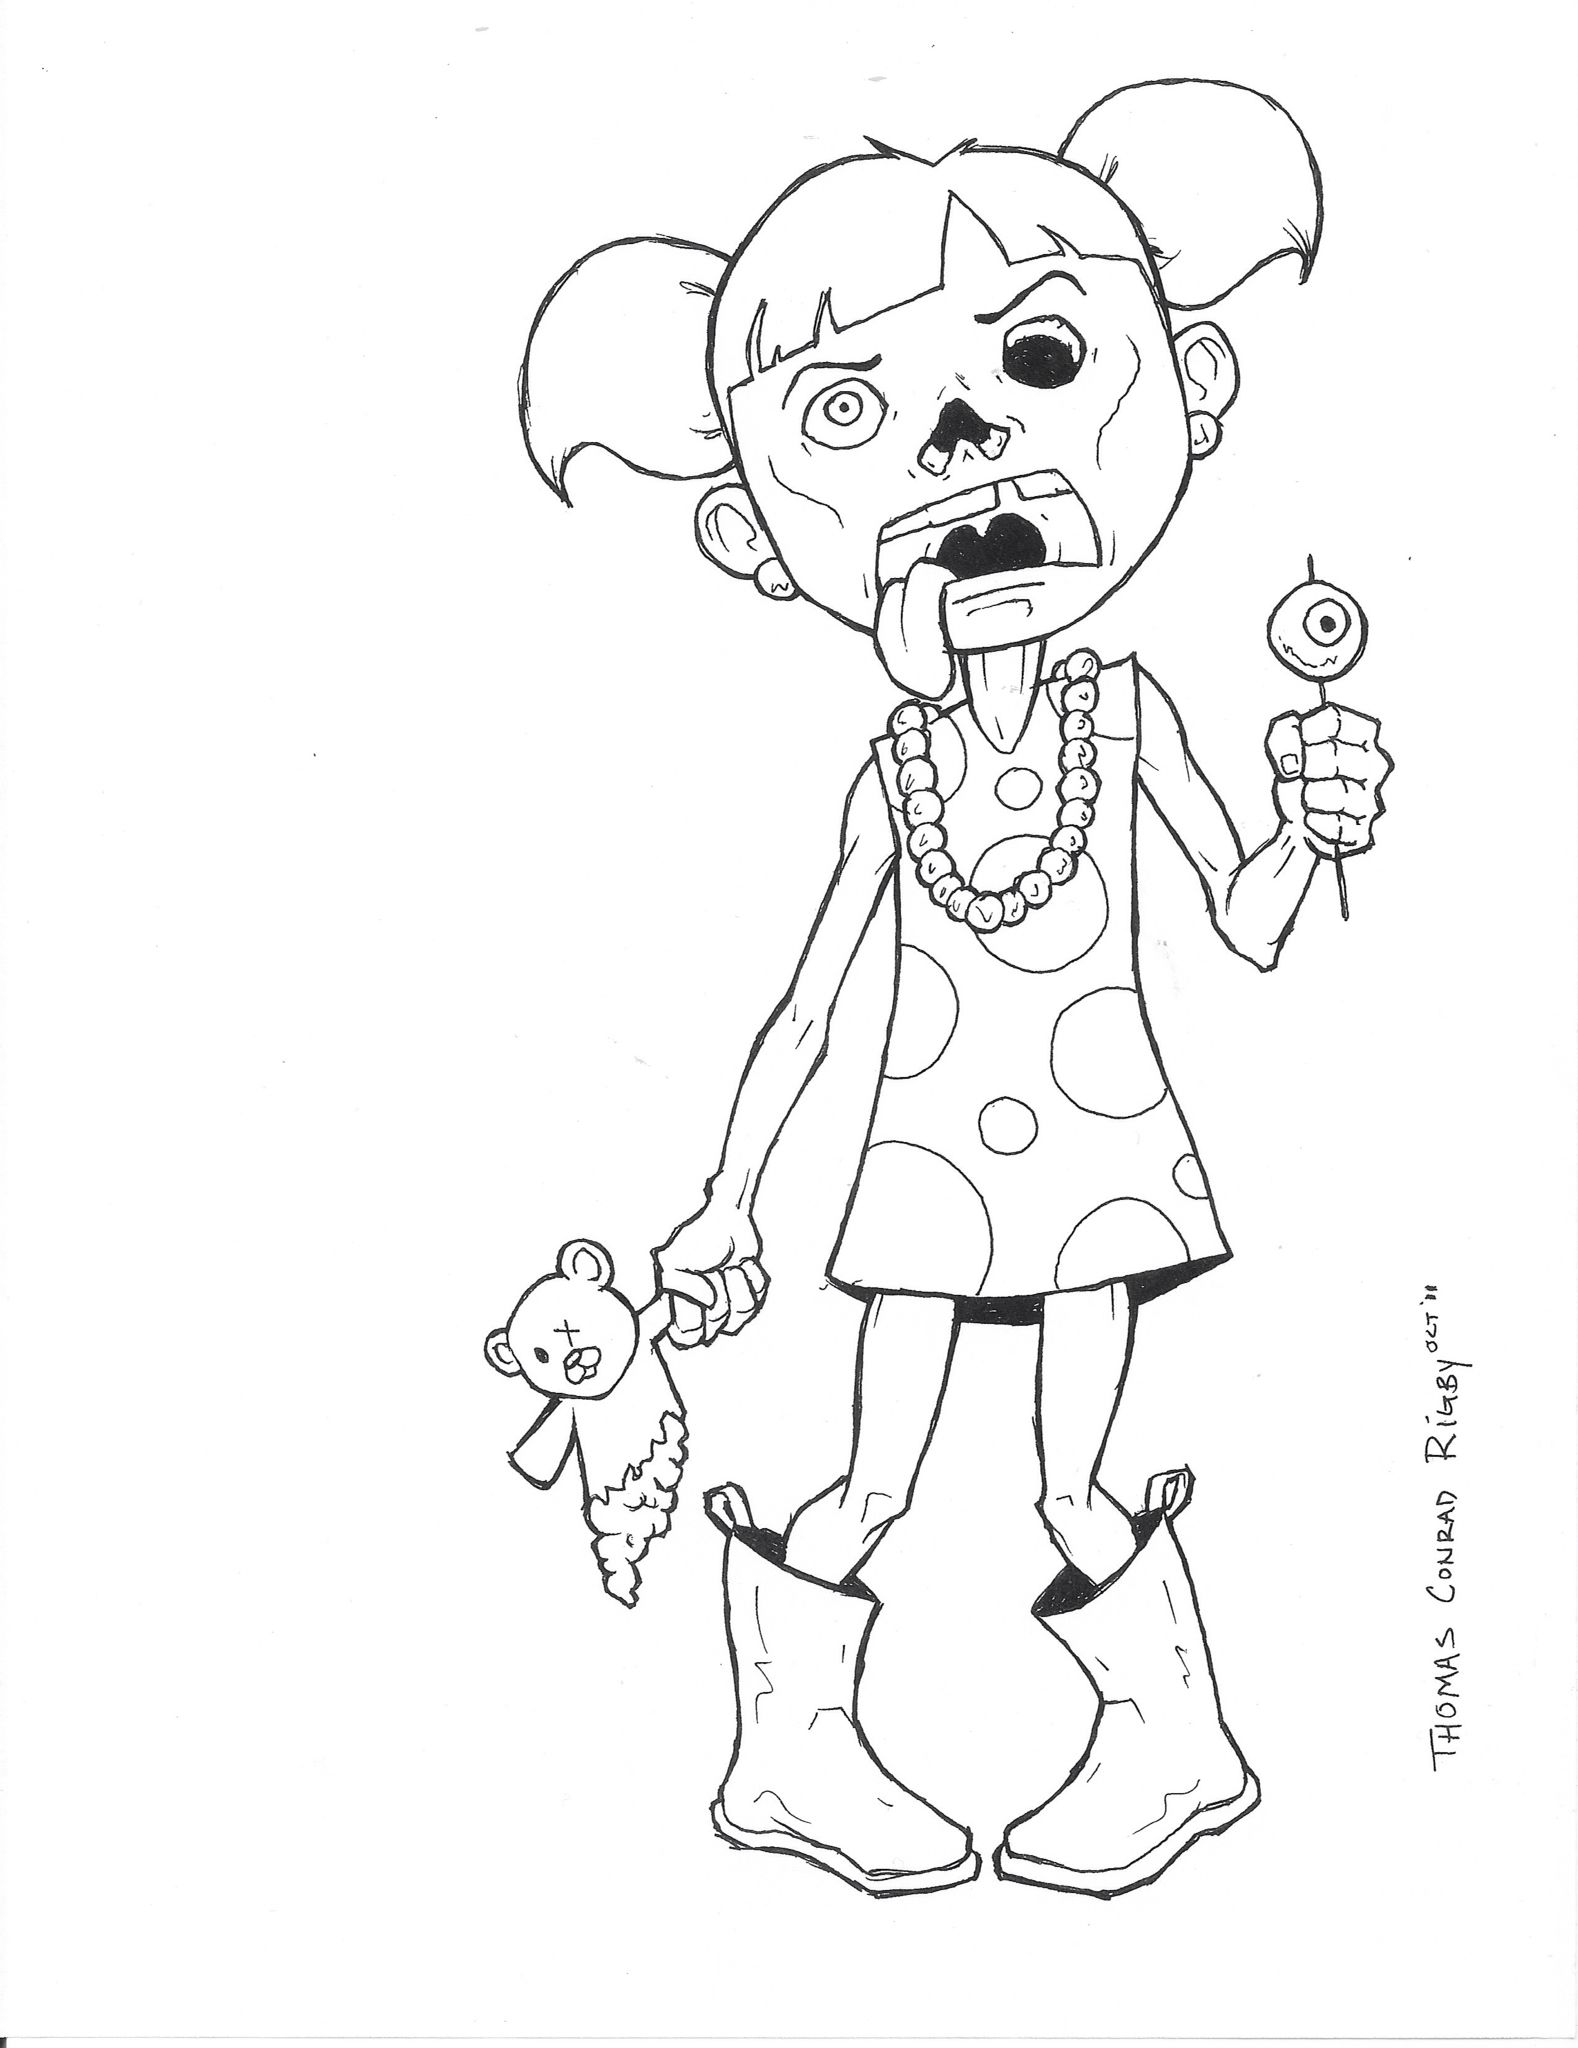 Zombie Coloring Page Disney Coloring Pages Fall Coloring Pages Cute Coloring Pages